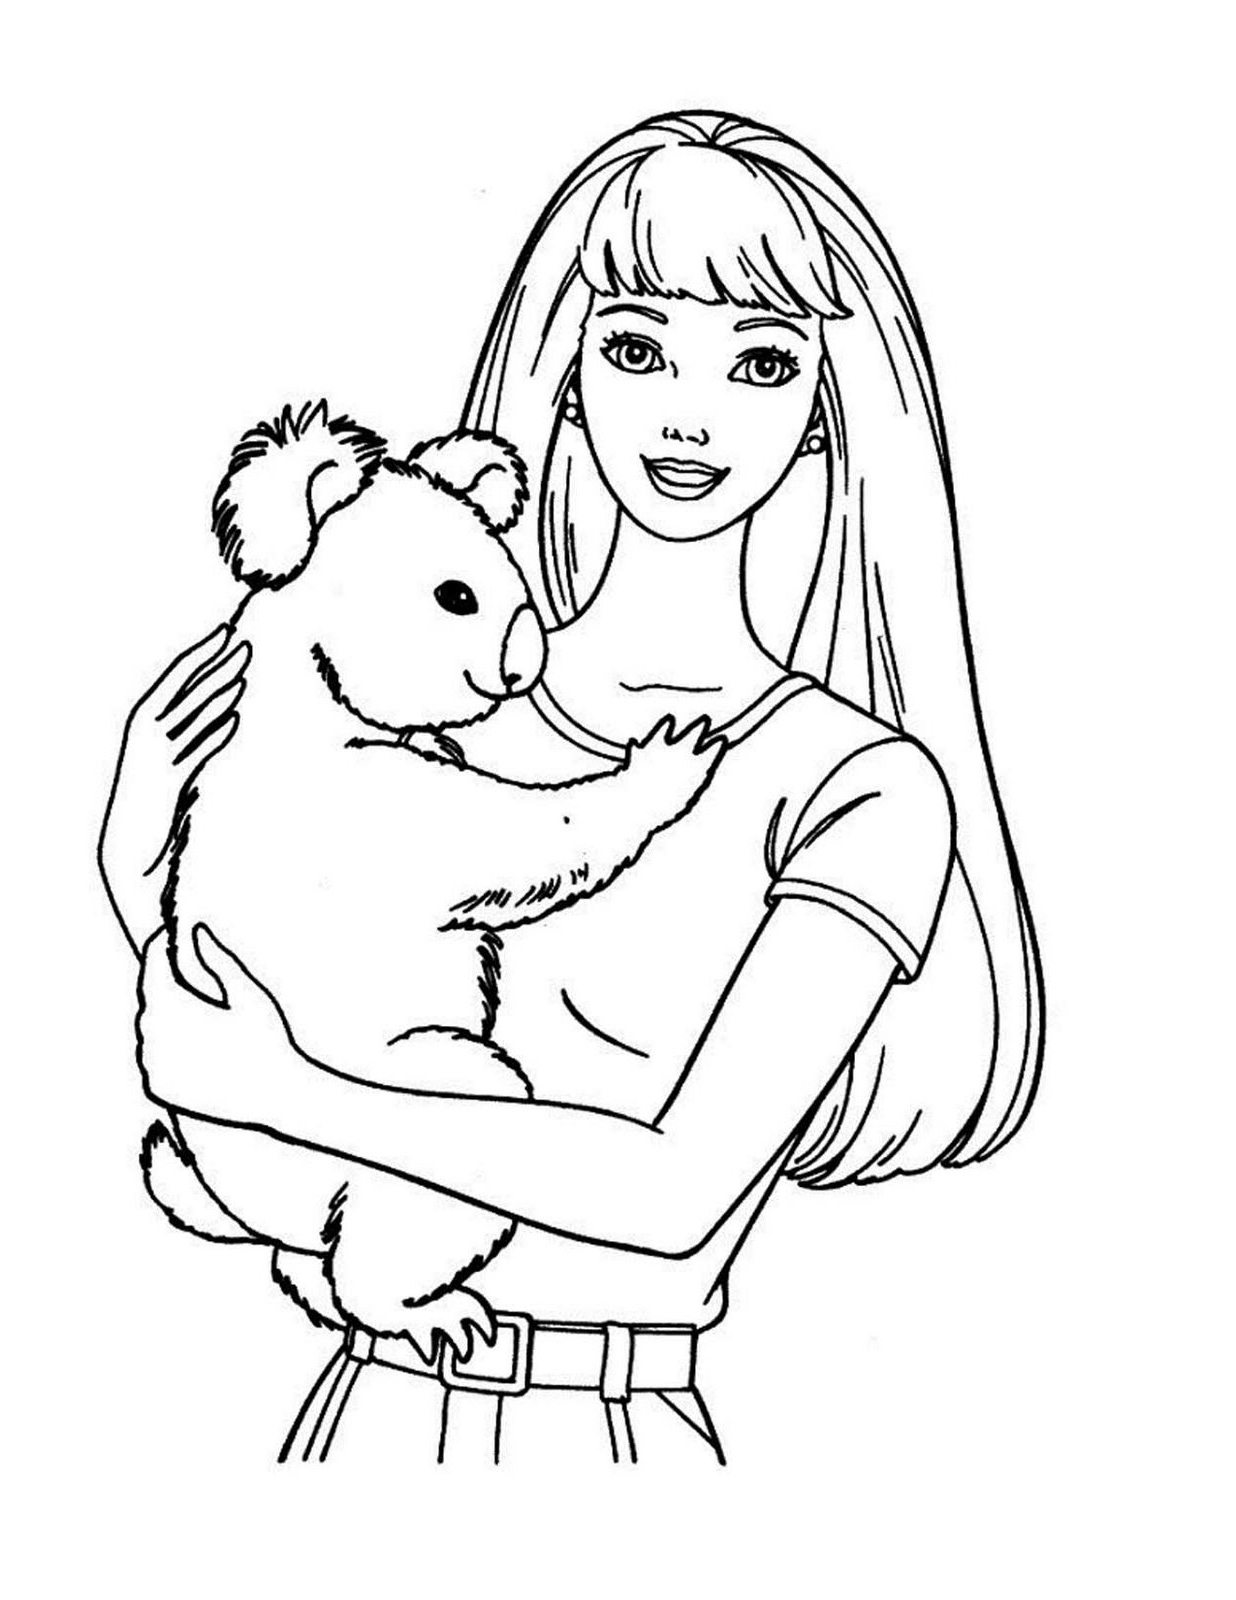 1236x1600 Find Thousands Of Disney Coloring Pages, Coloring Pages, Disney